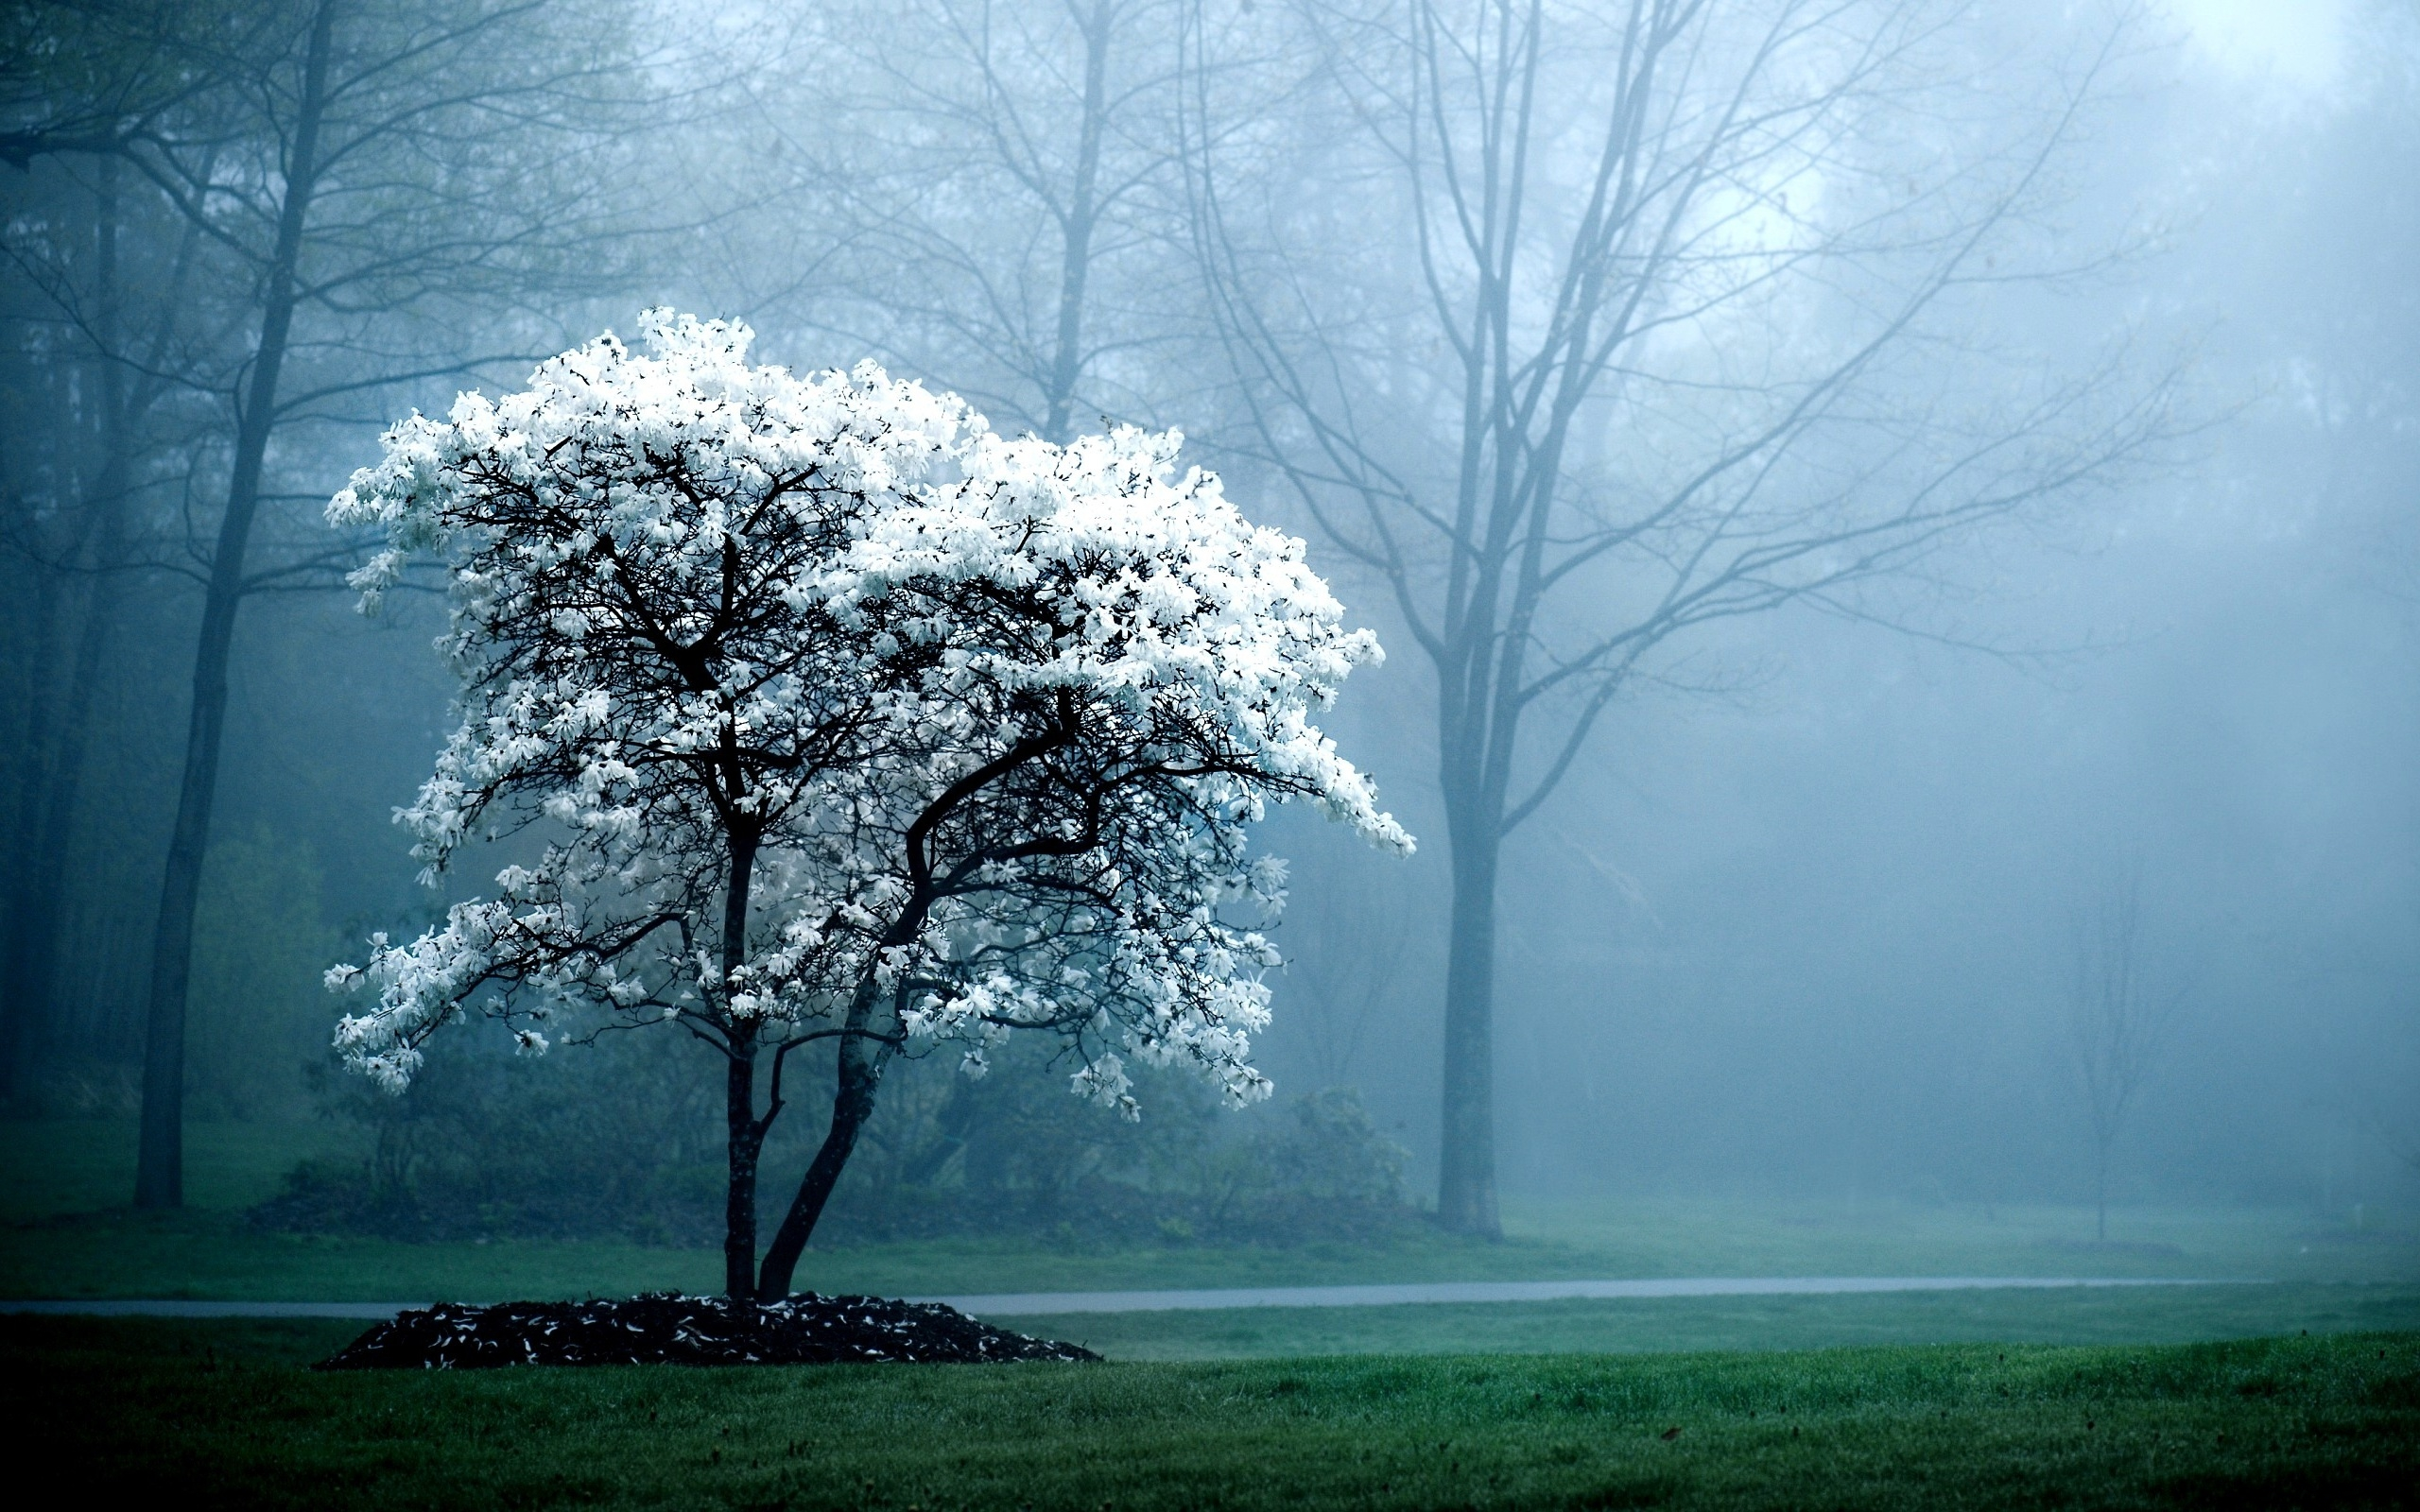 HD Peaceful Wallpapers 2560x1600